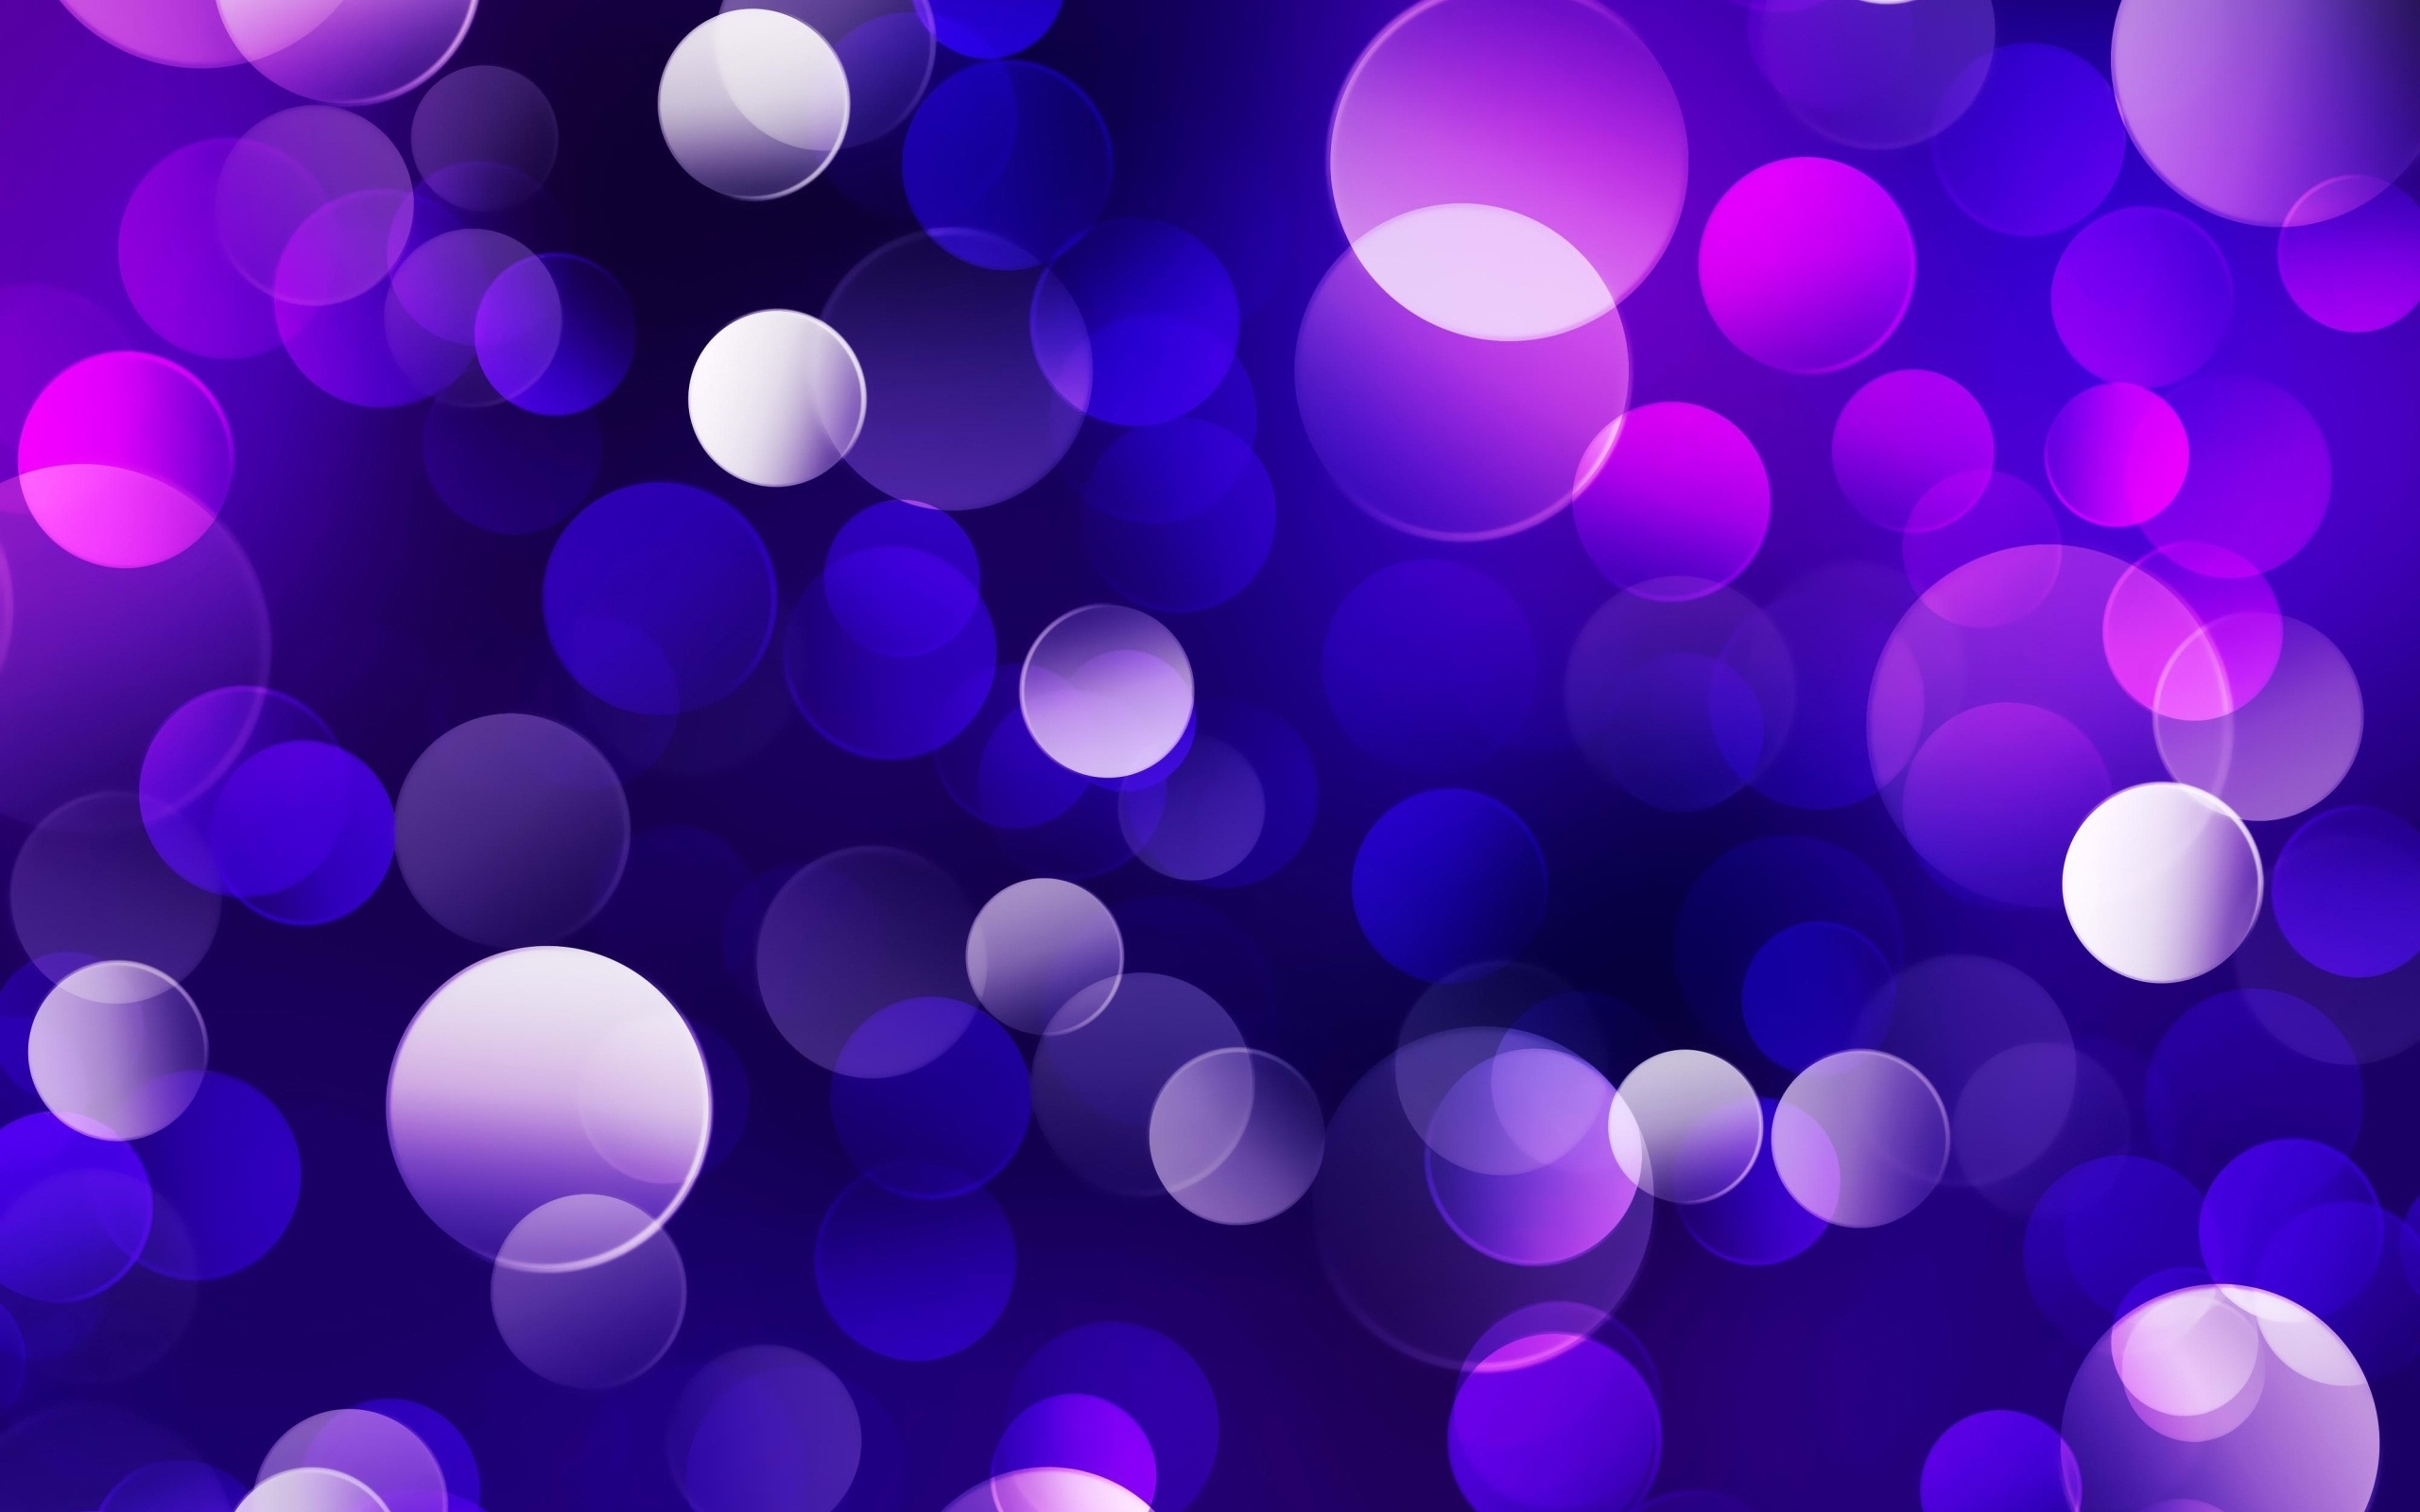 Purple Abstract Wallpaper 2560x1600